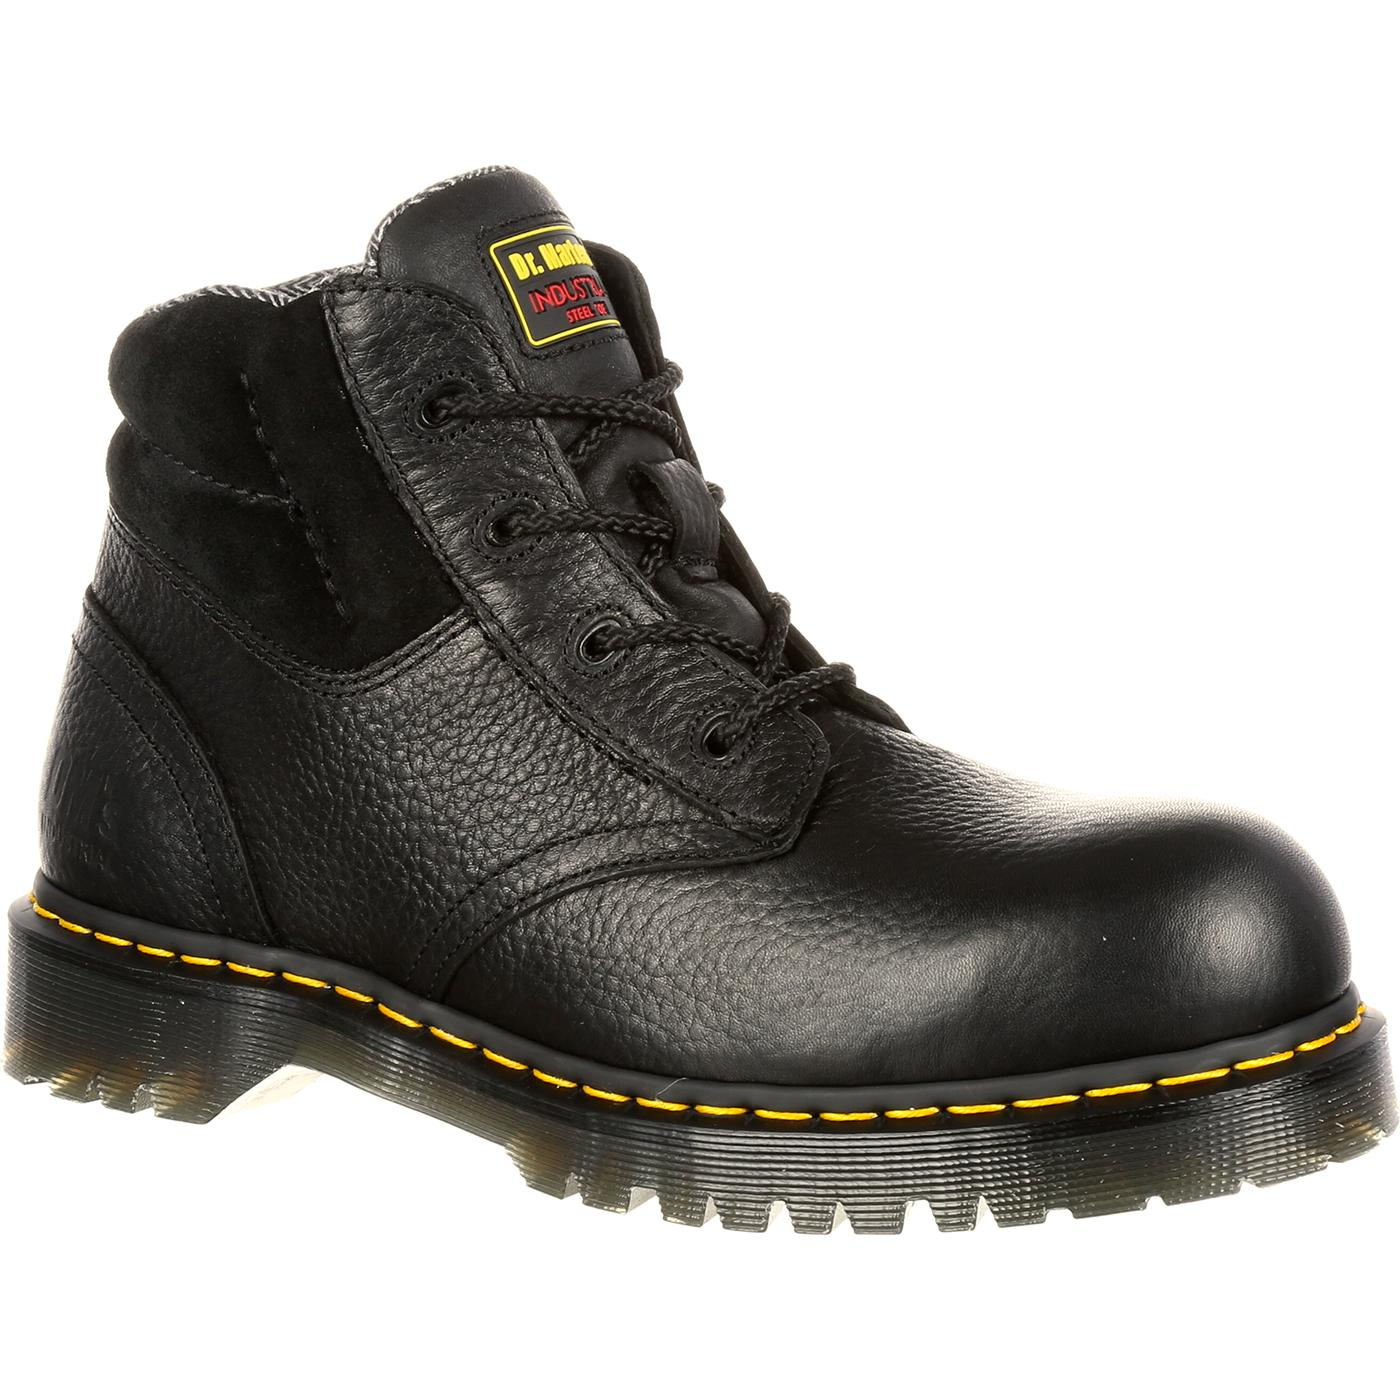 db6b52d9e38 Dr. Martens Icon Unisex Steel Toe Lace-Up Work Boot